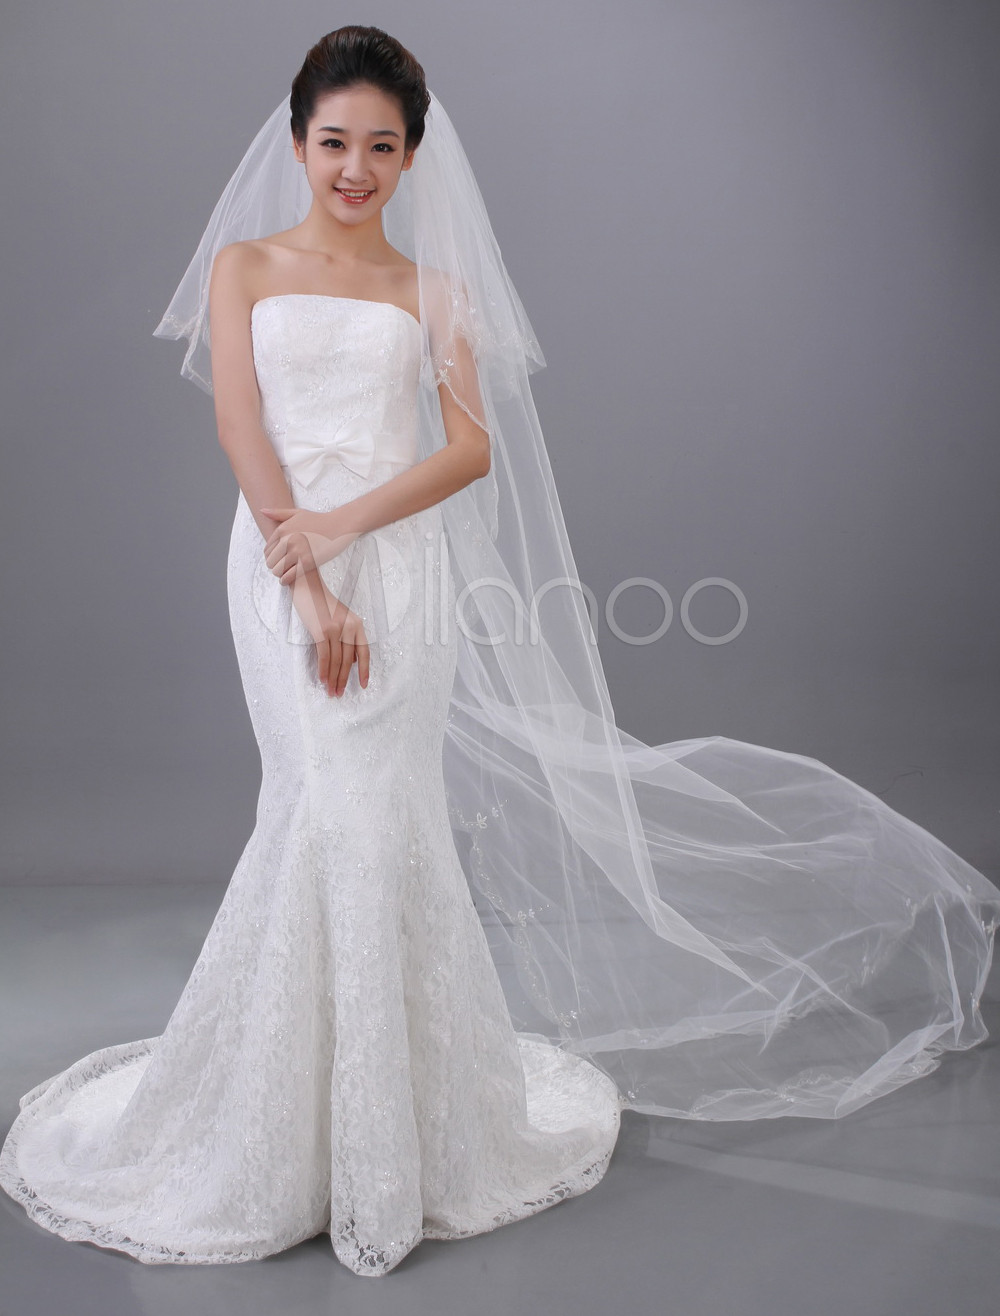 White Waterfall Two-Tier Beading Tulle Wedding Veil